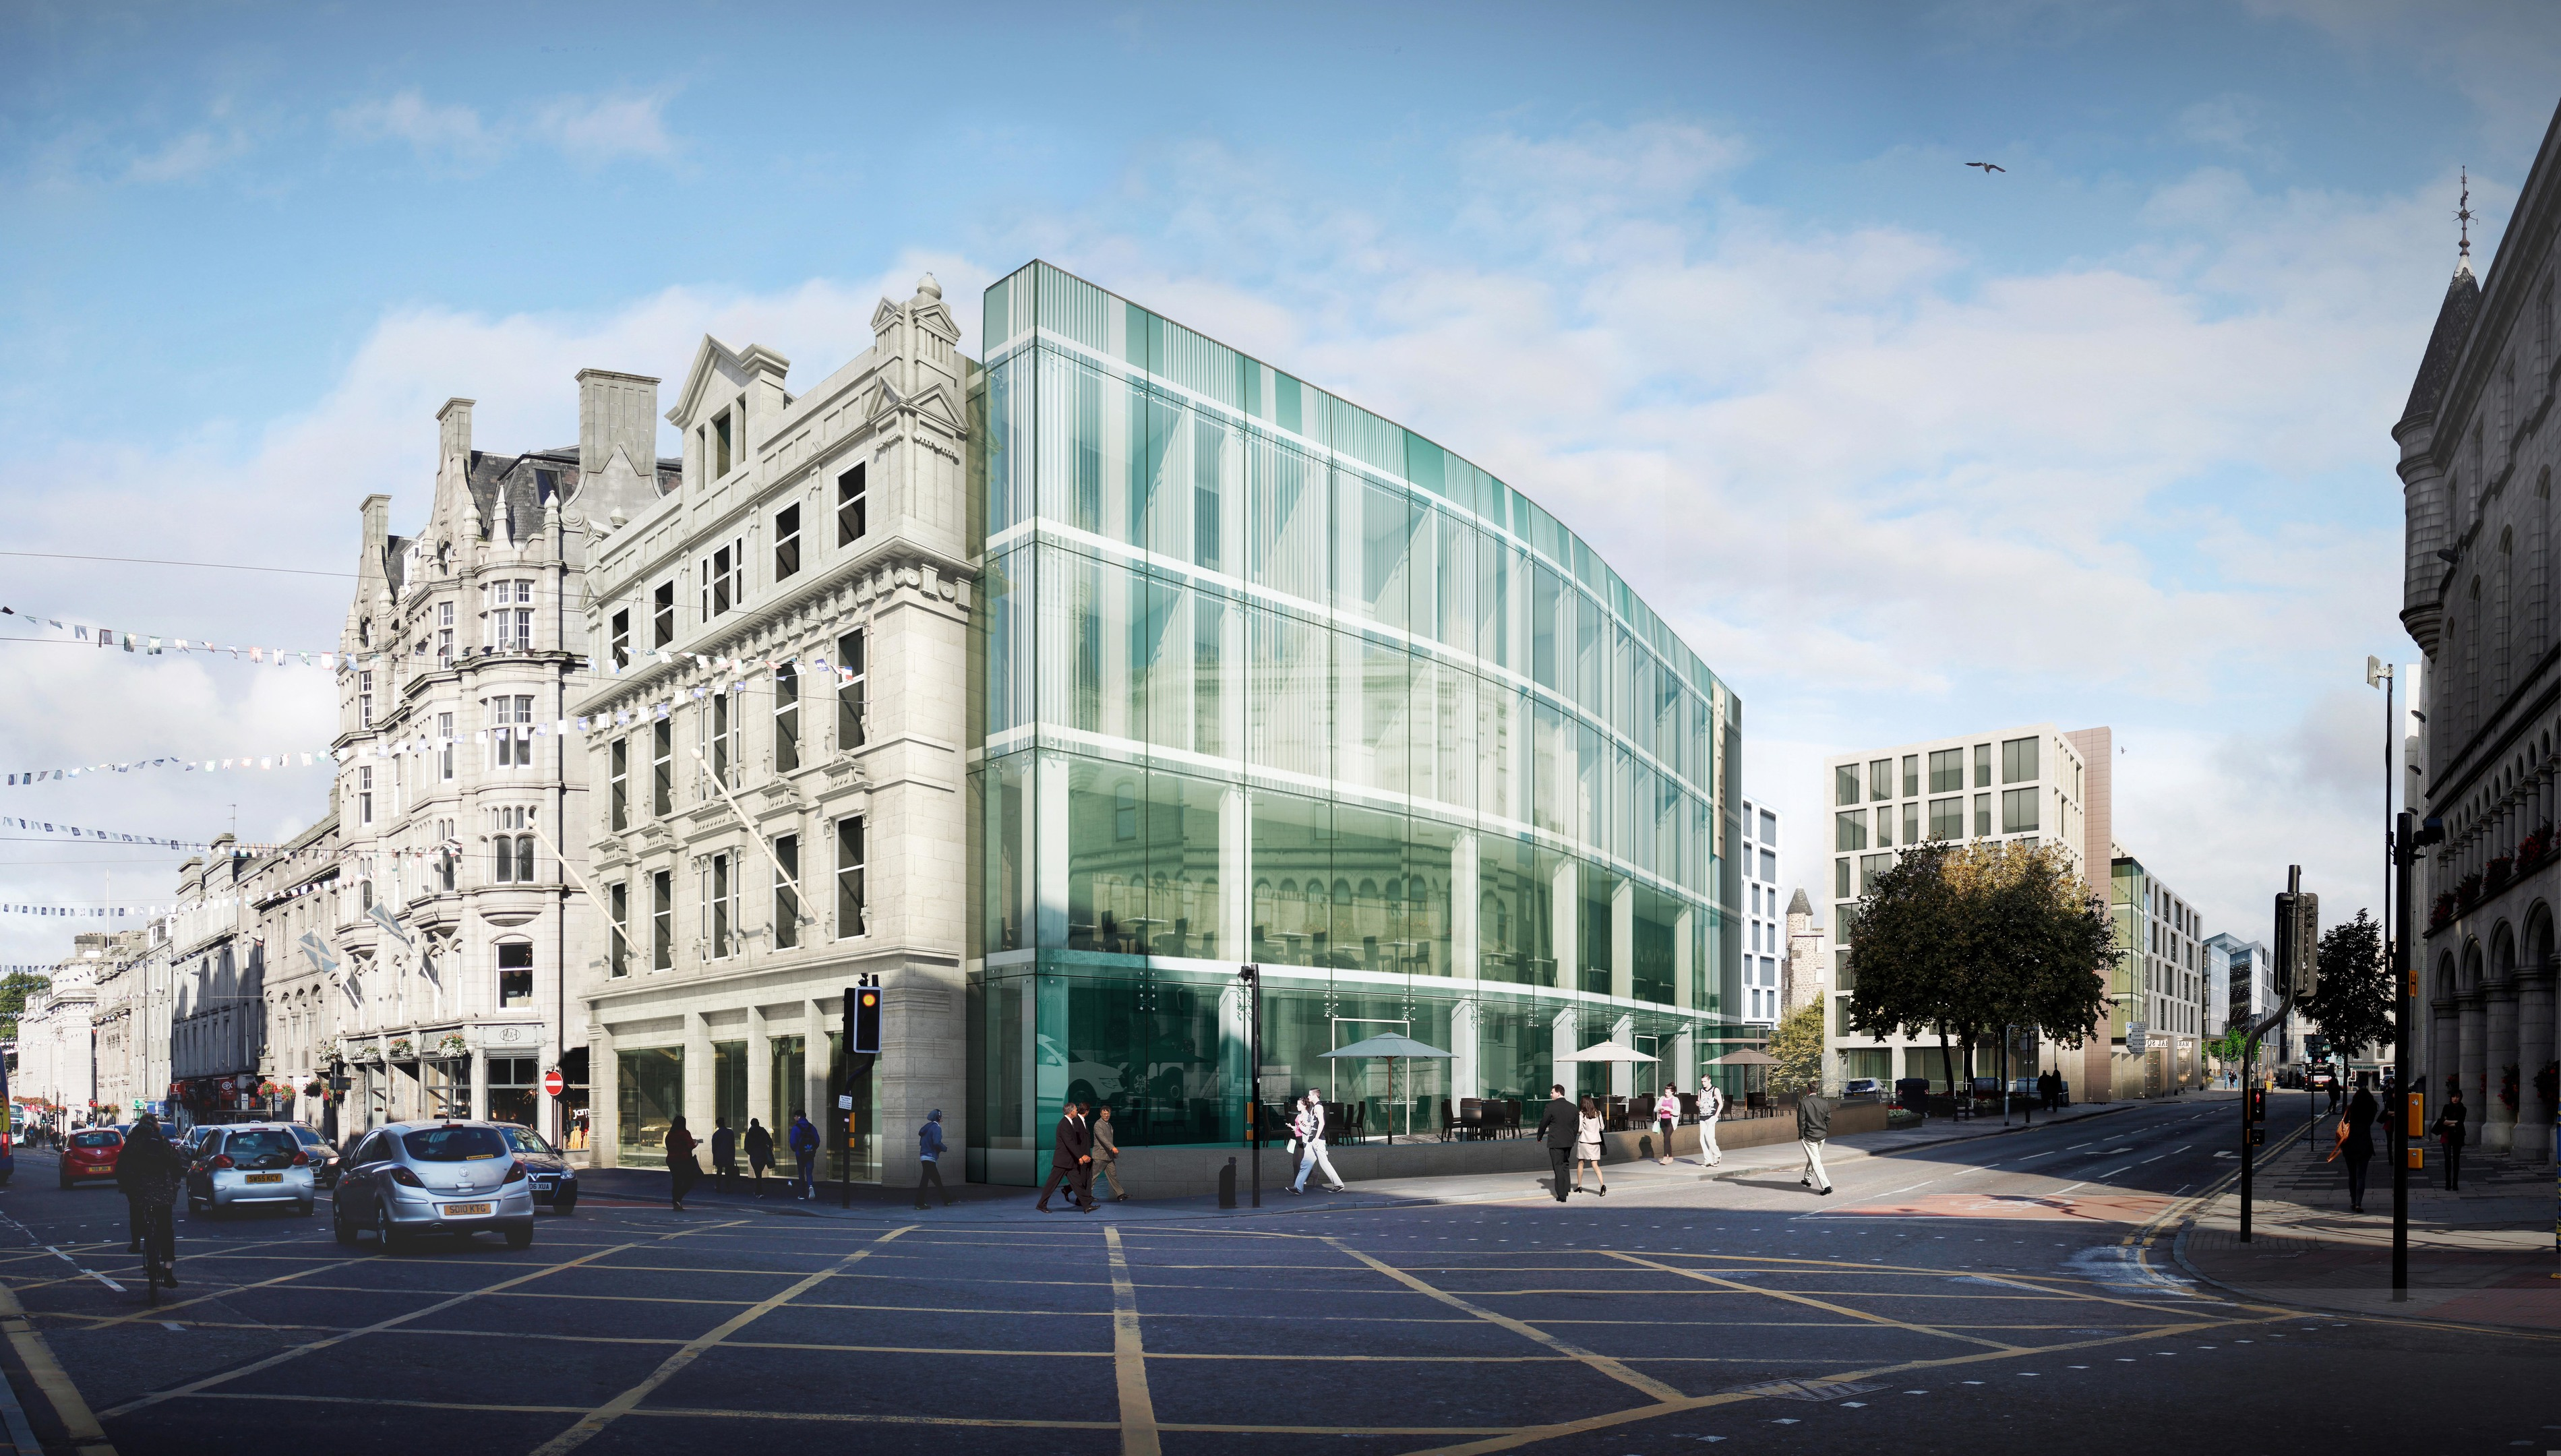 An artist's impression of how the building could have looked.